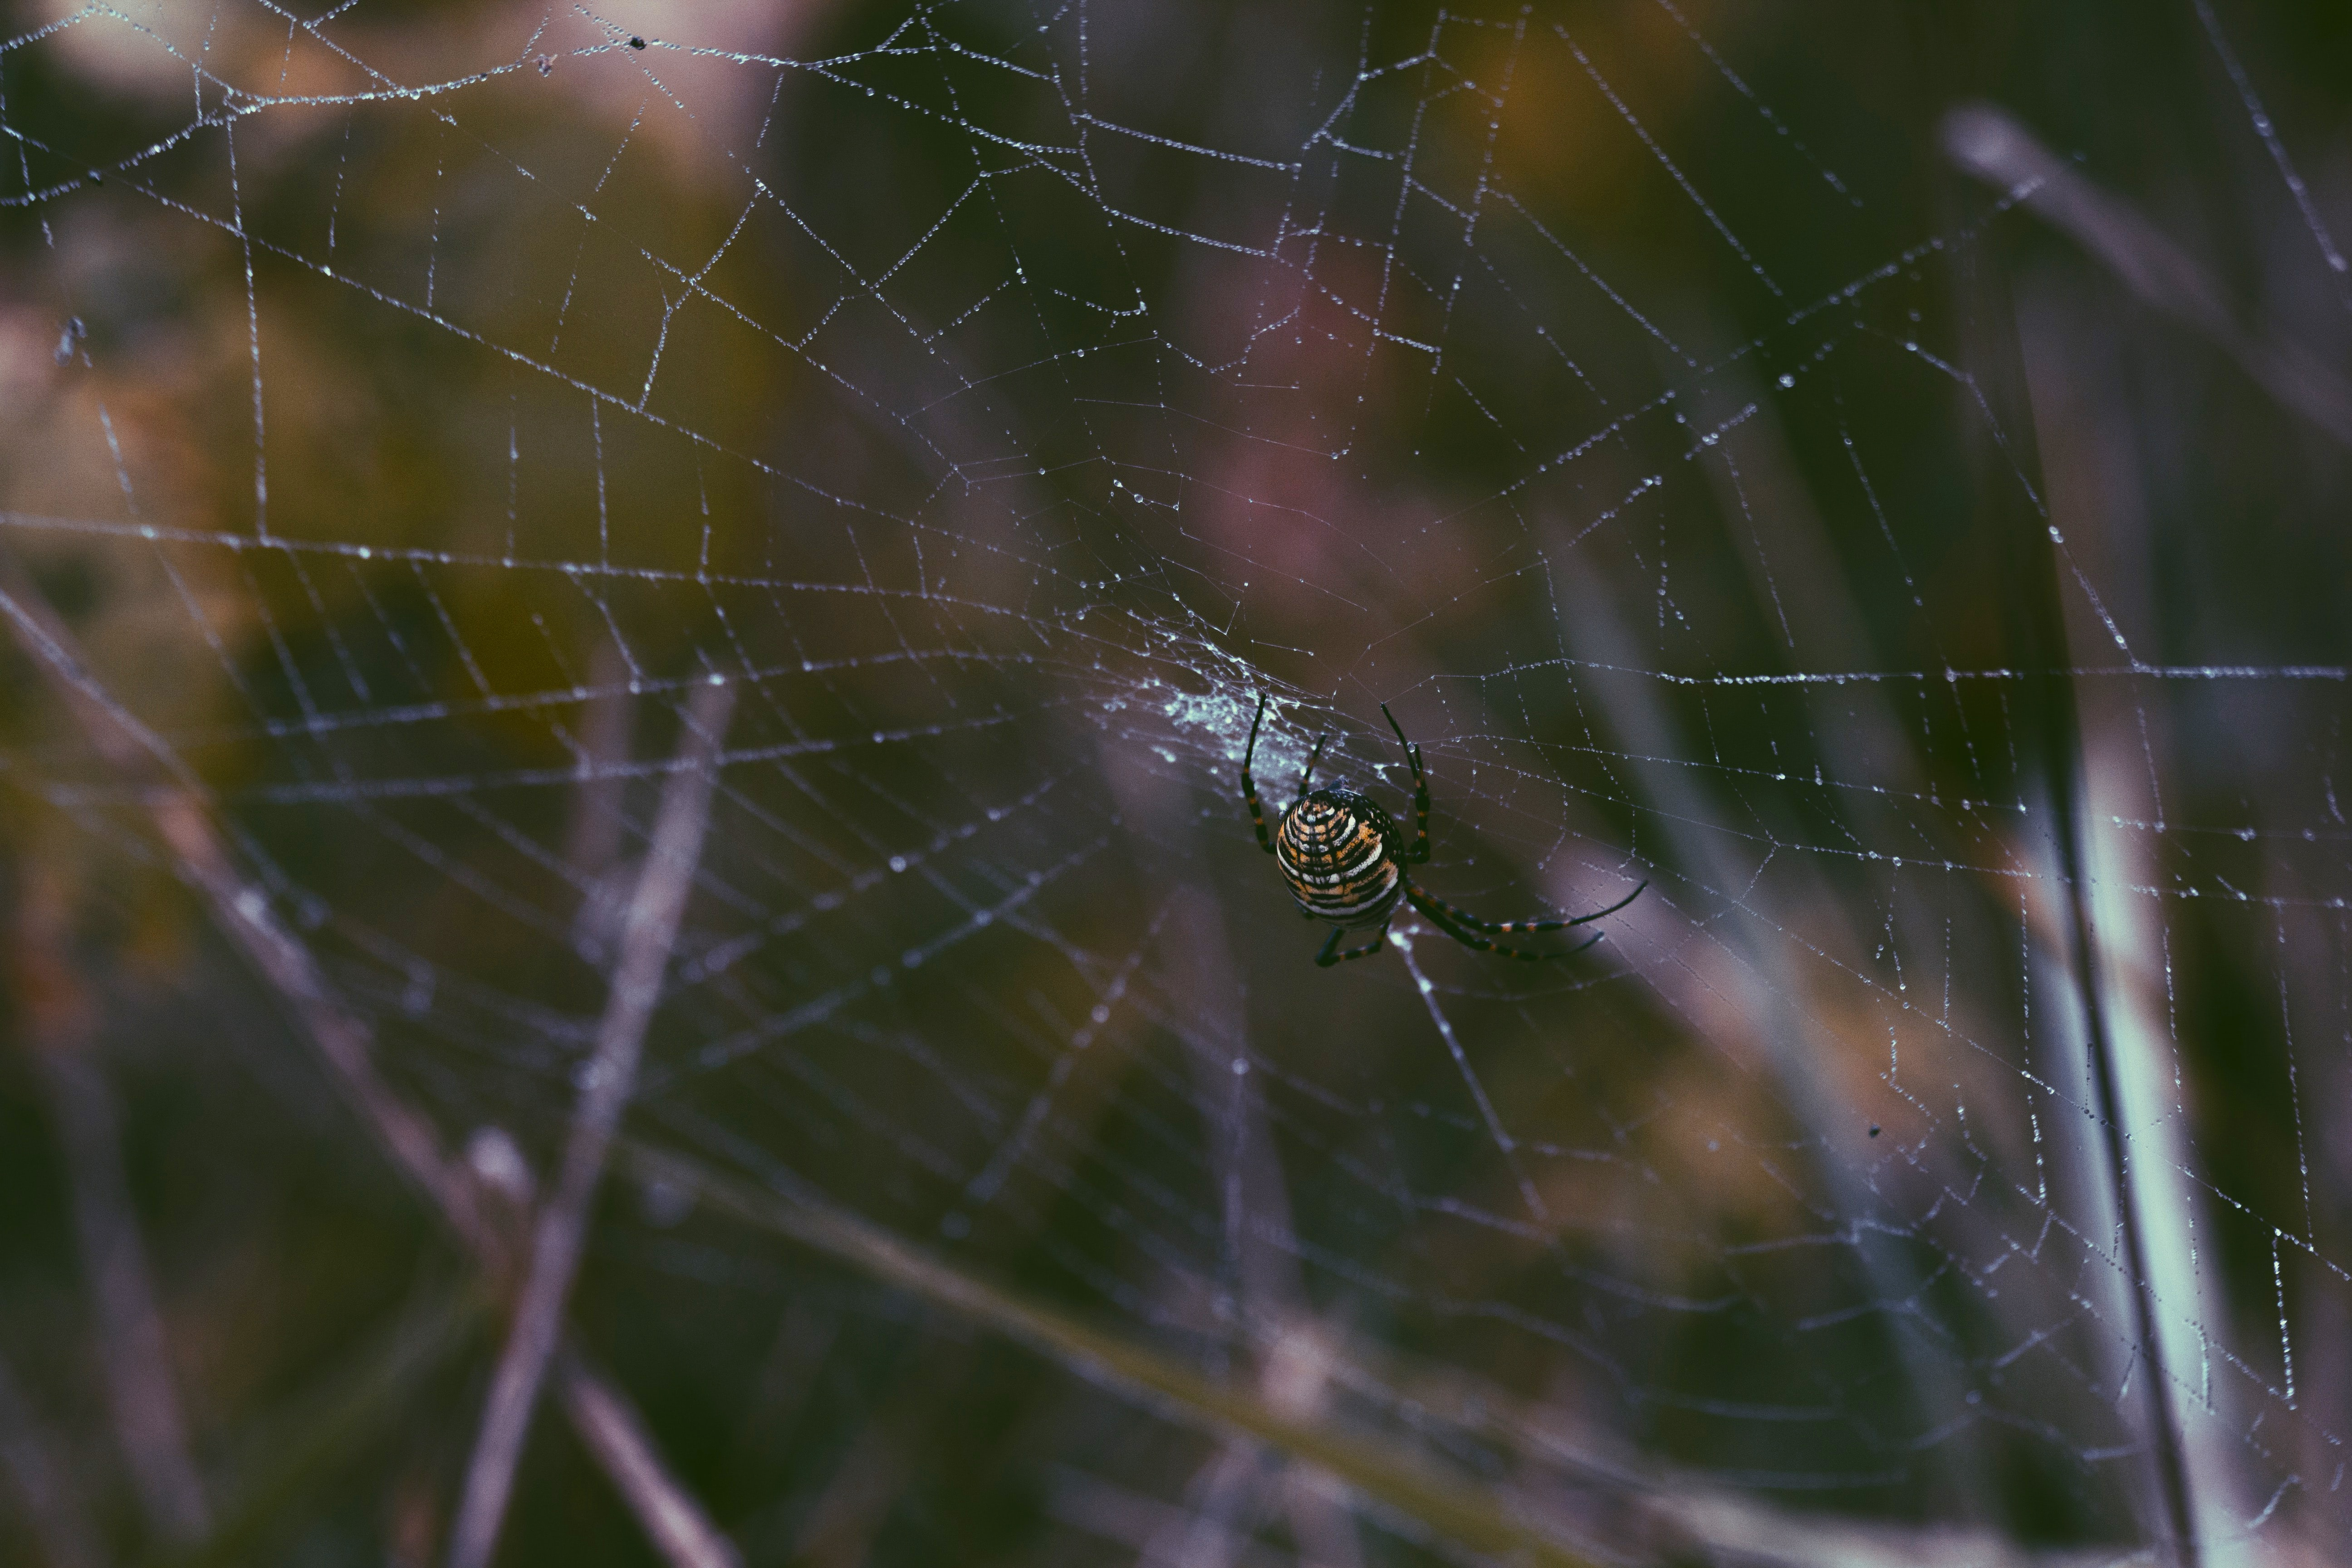 A spider in his web.